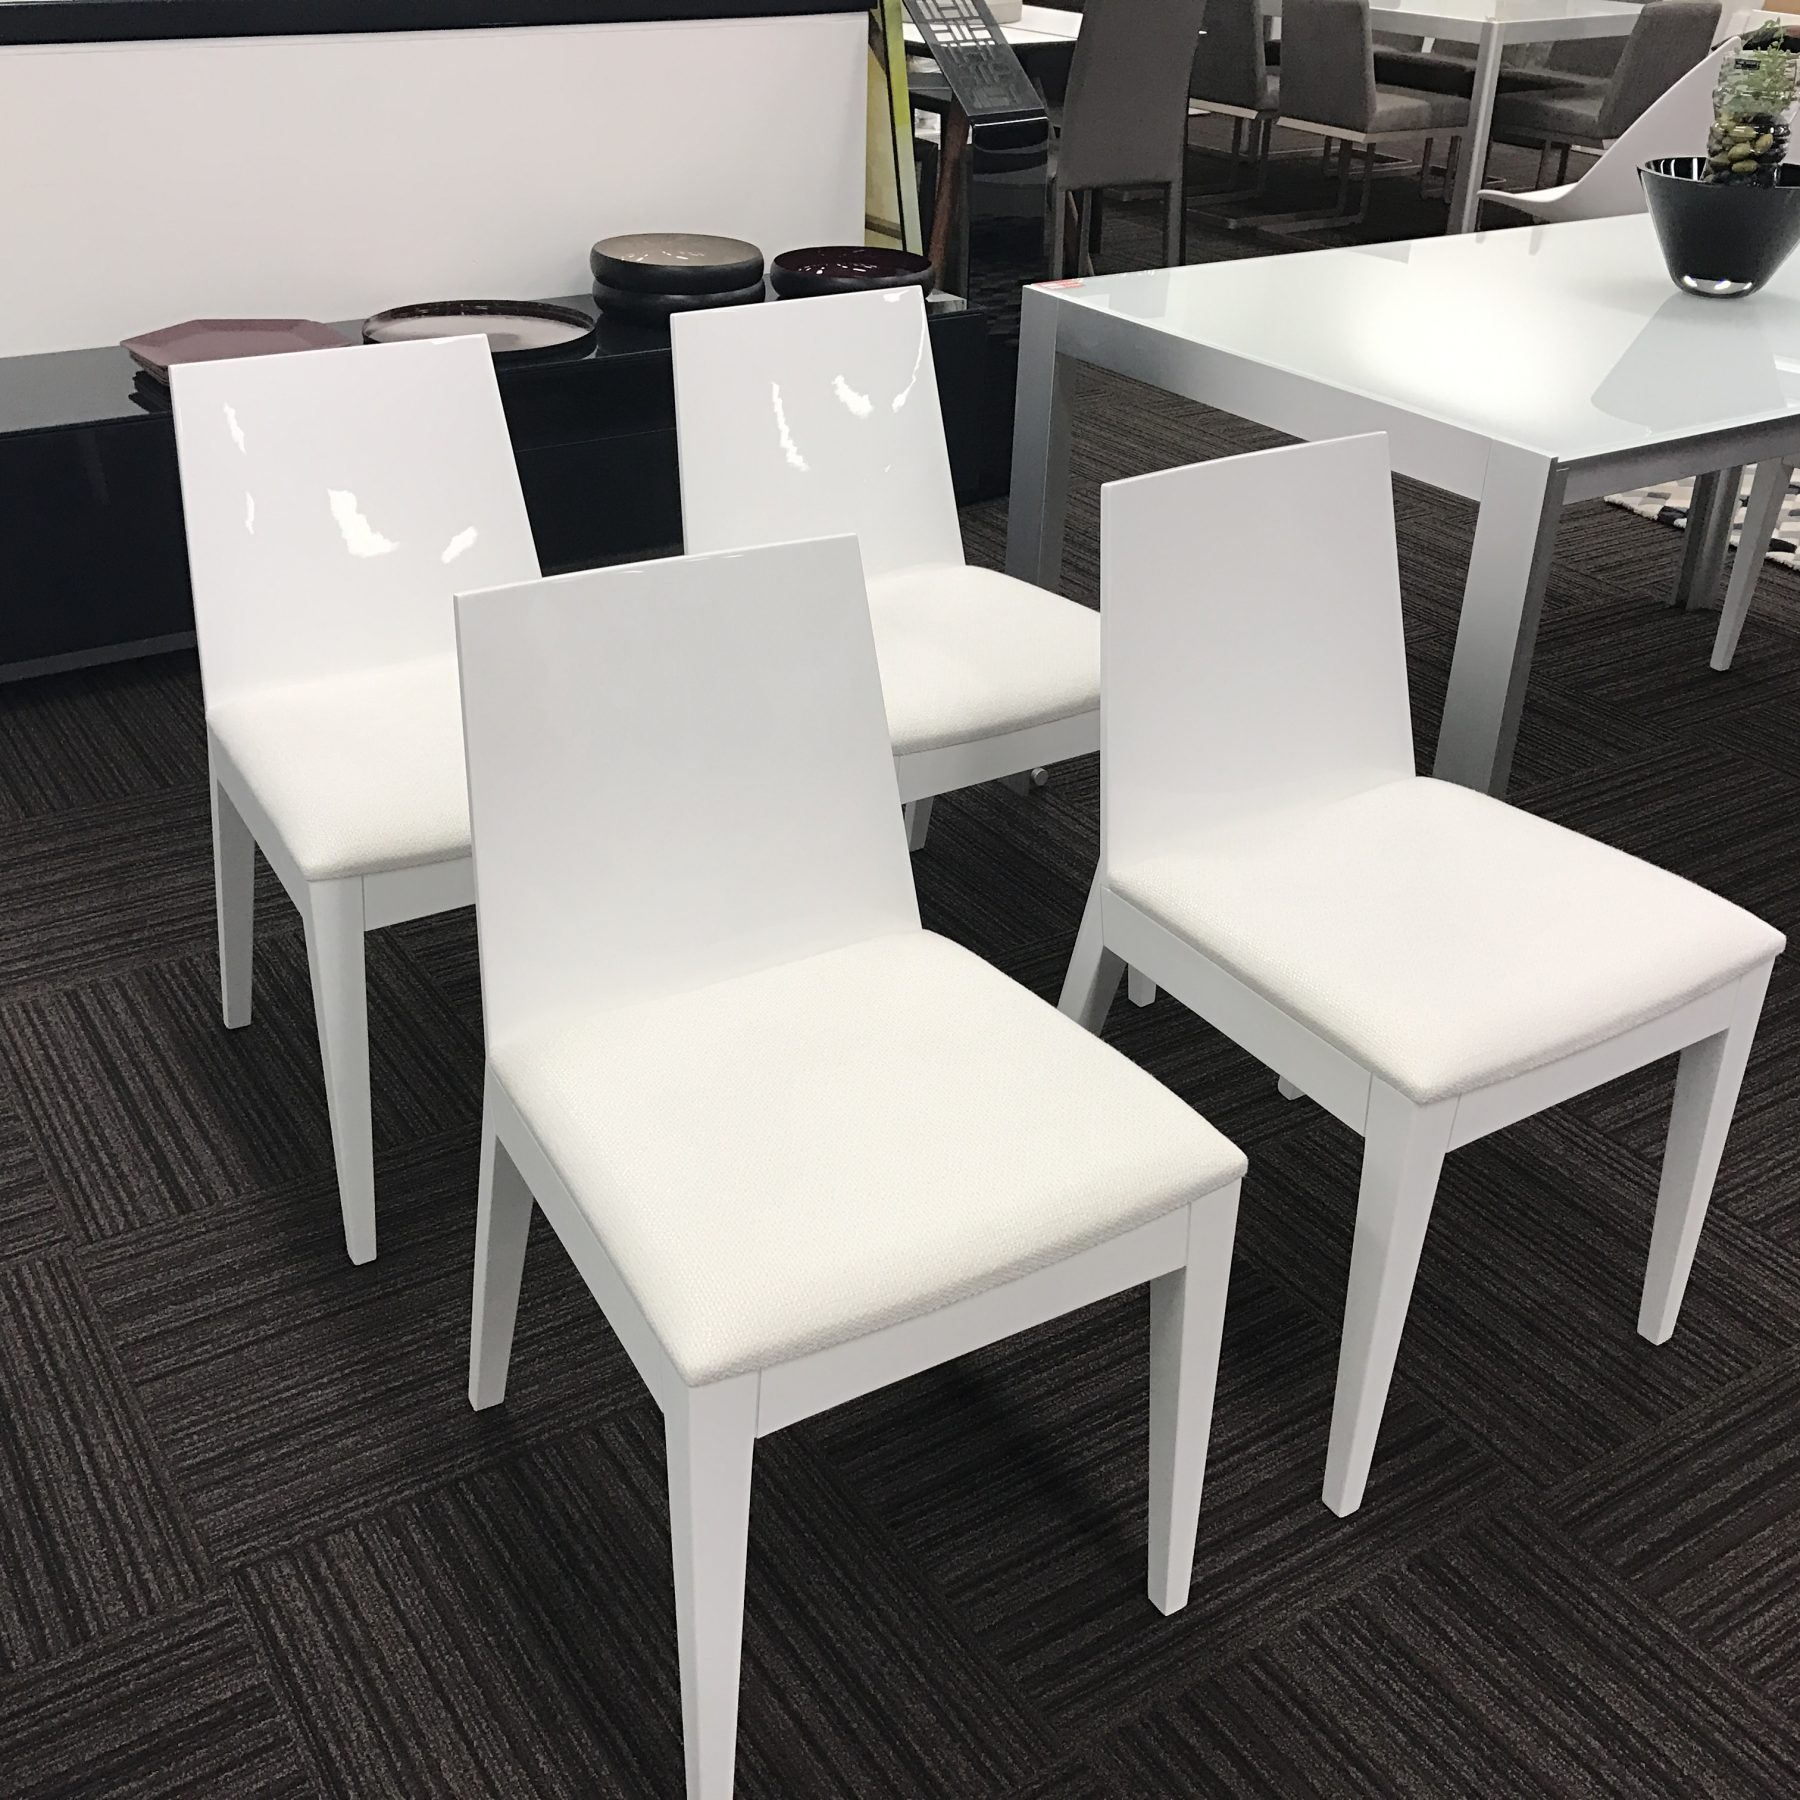 Dining Chairs Clearance: Warehouse Clearance- Ava Dining Chairs SET OF 4